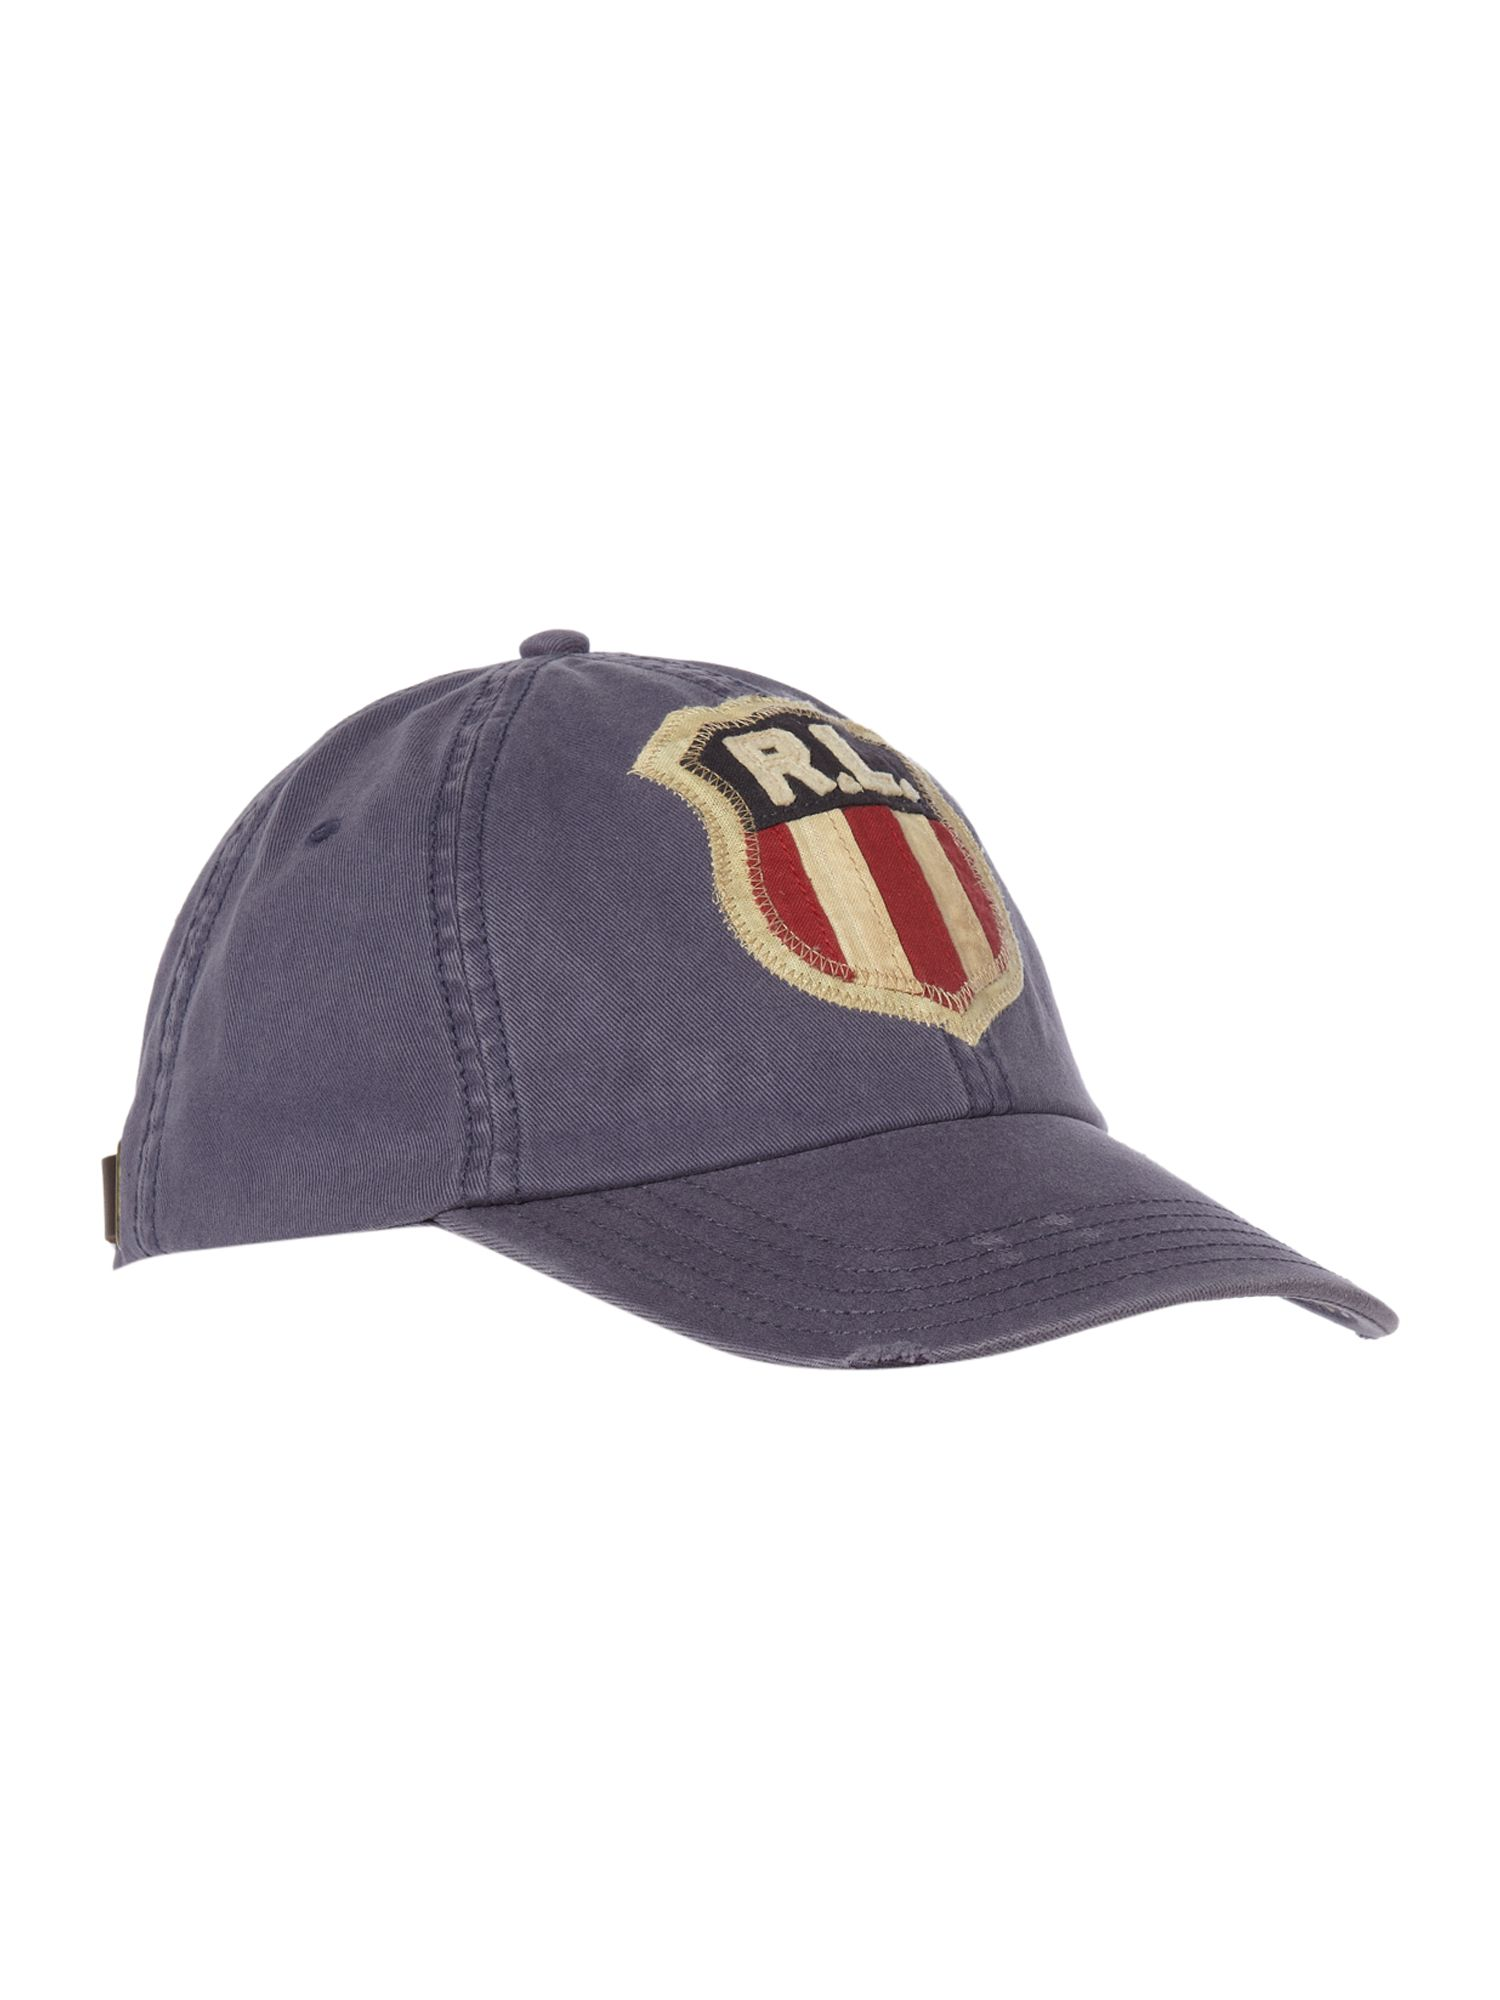 Polo Jeans Baseball cap with flag motif - Navy `One product image